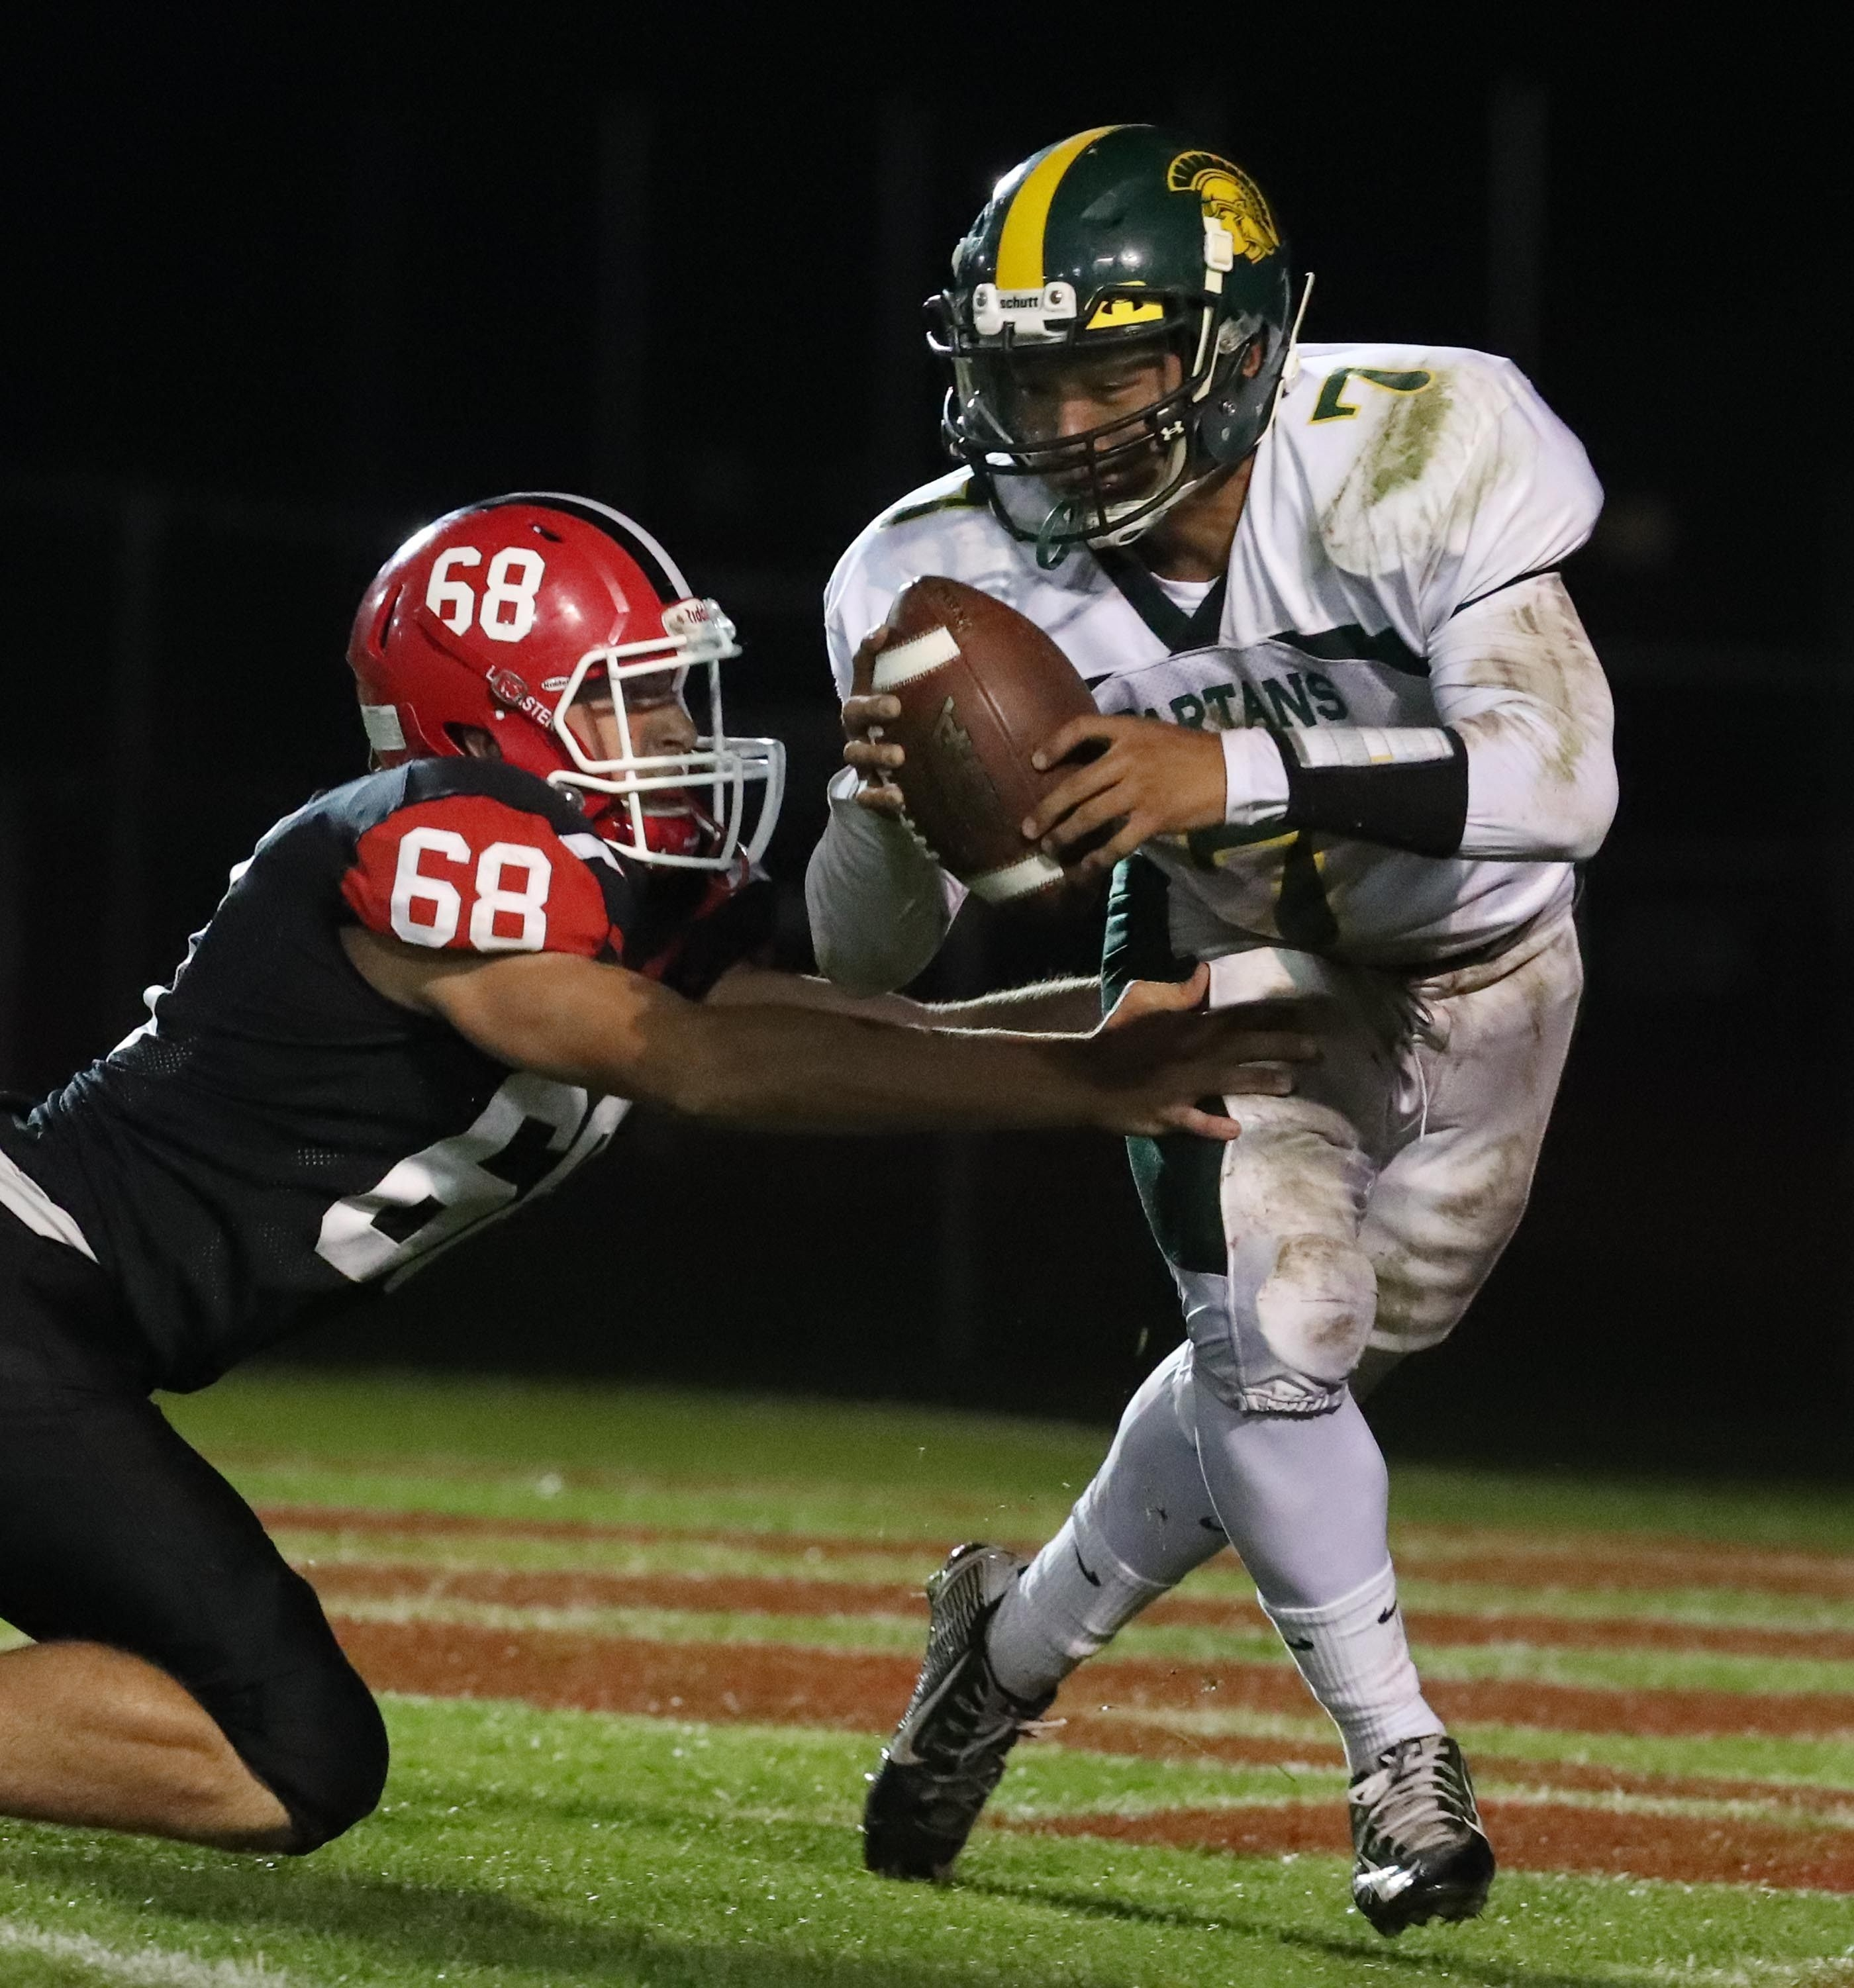 Lancaster's  Jacob Michalski pressures Williamsville North's Jason Hwang during last week's Class AA matchup.